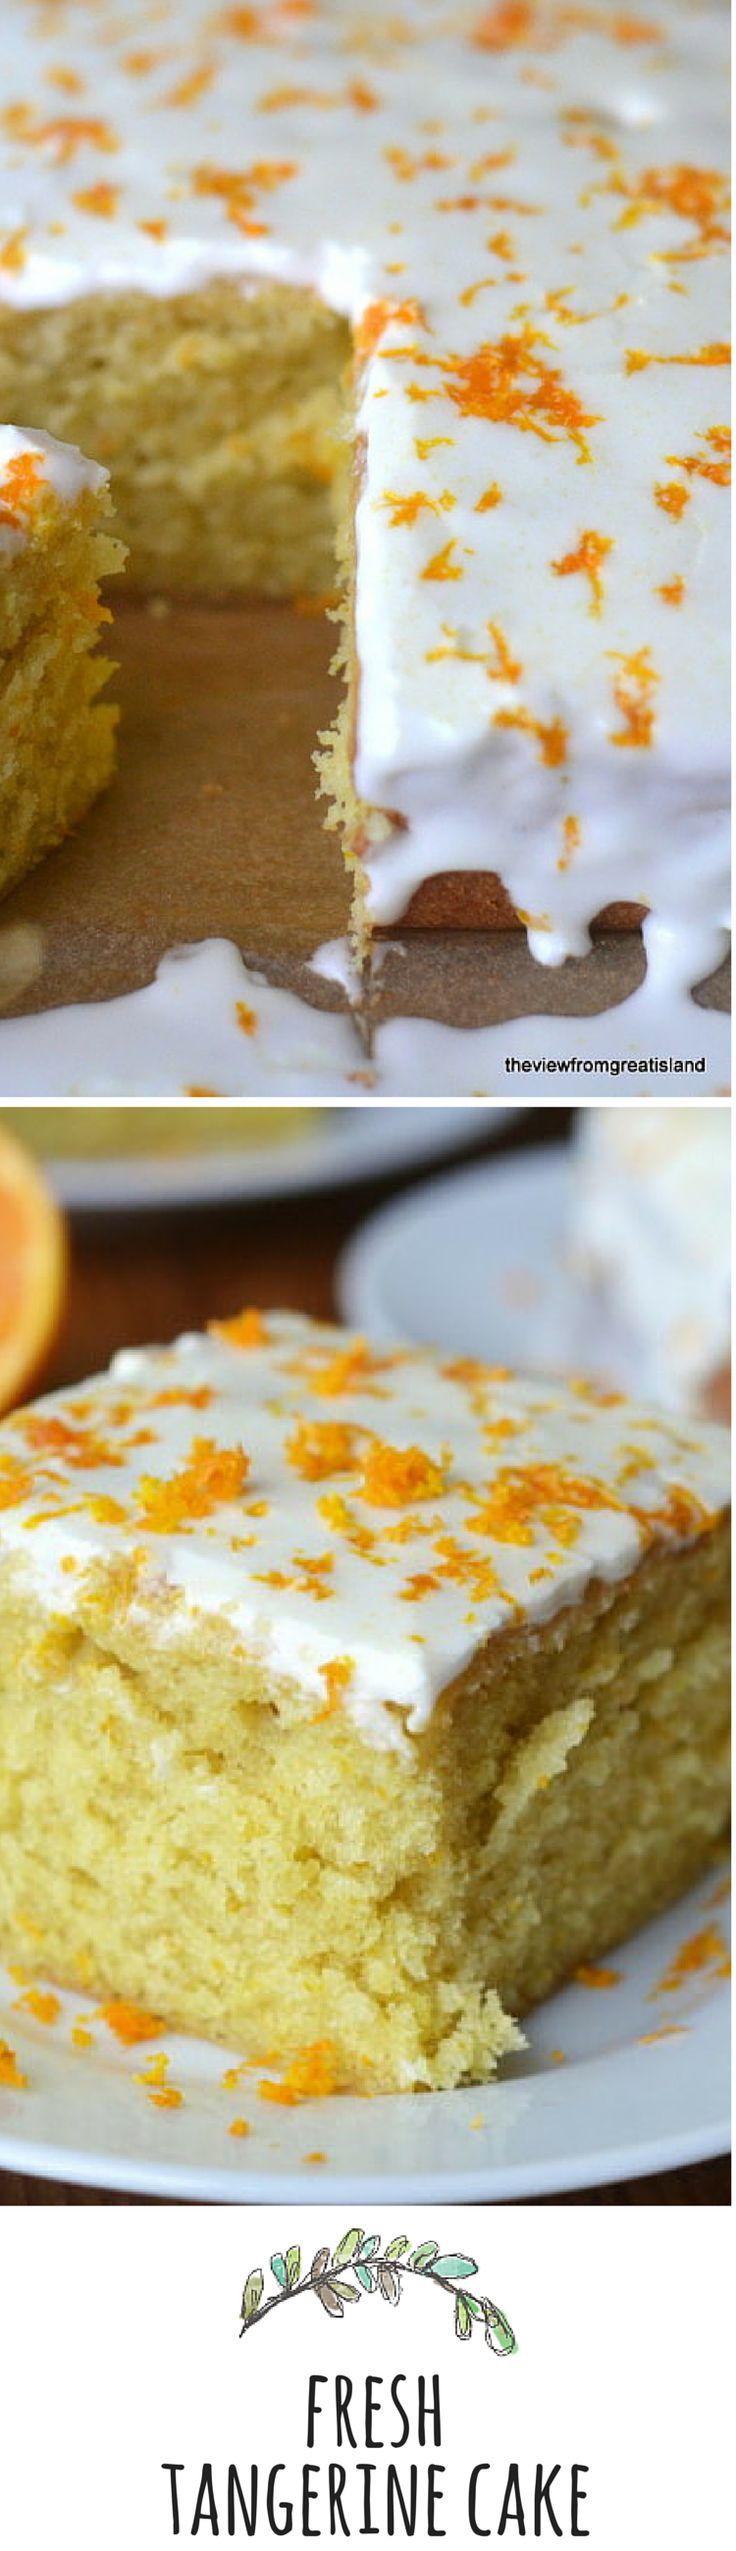 This cake bursts with fresh tangerine flavor!